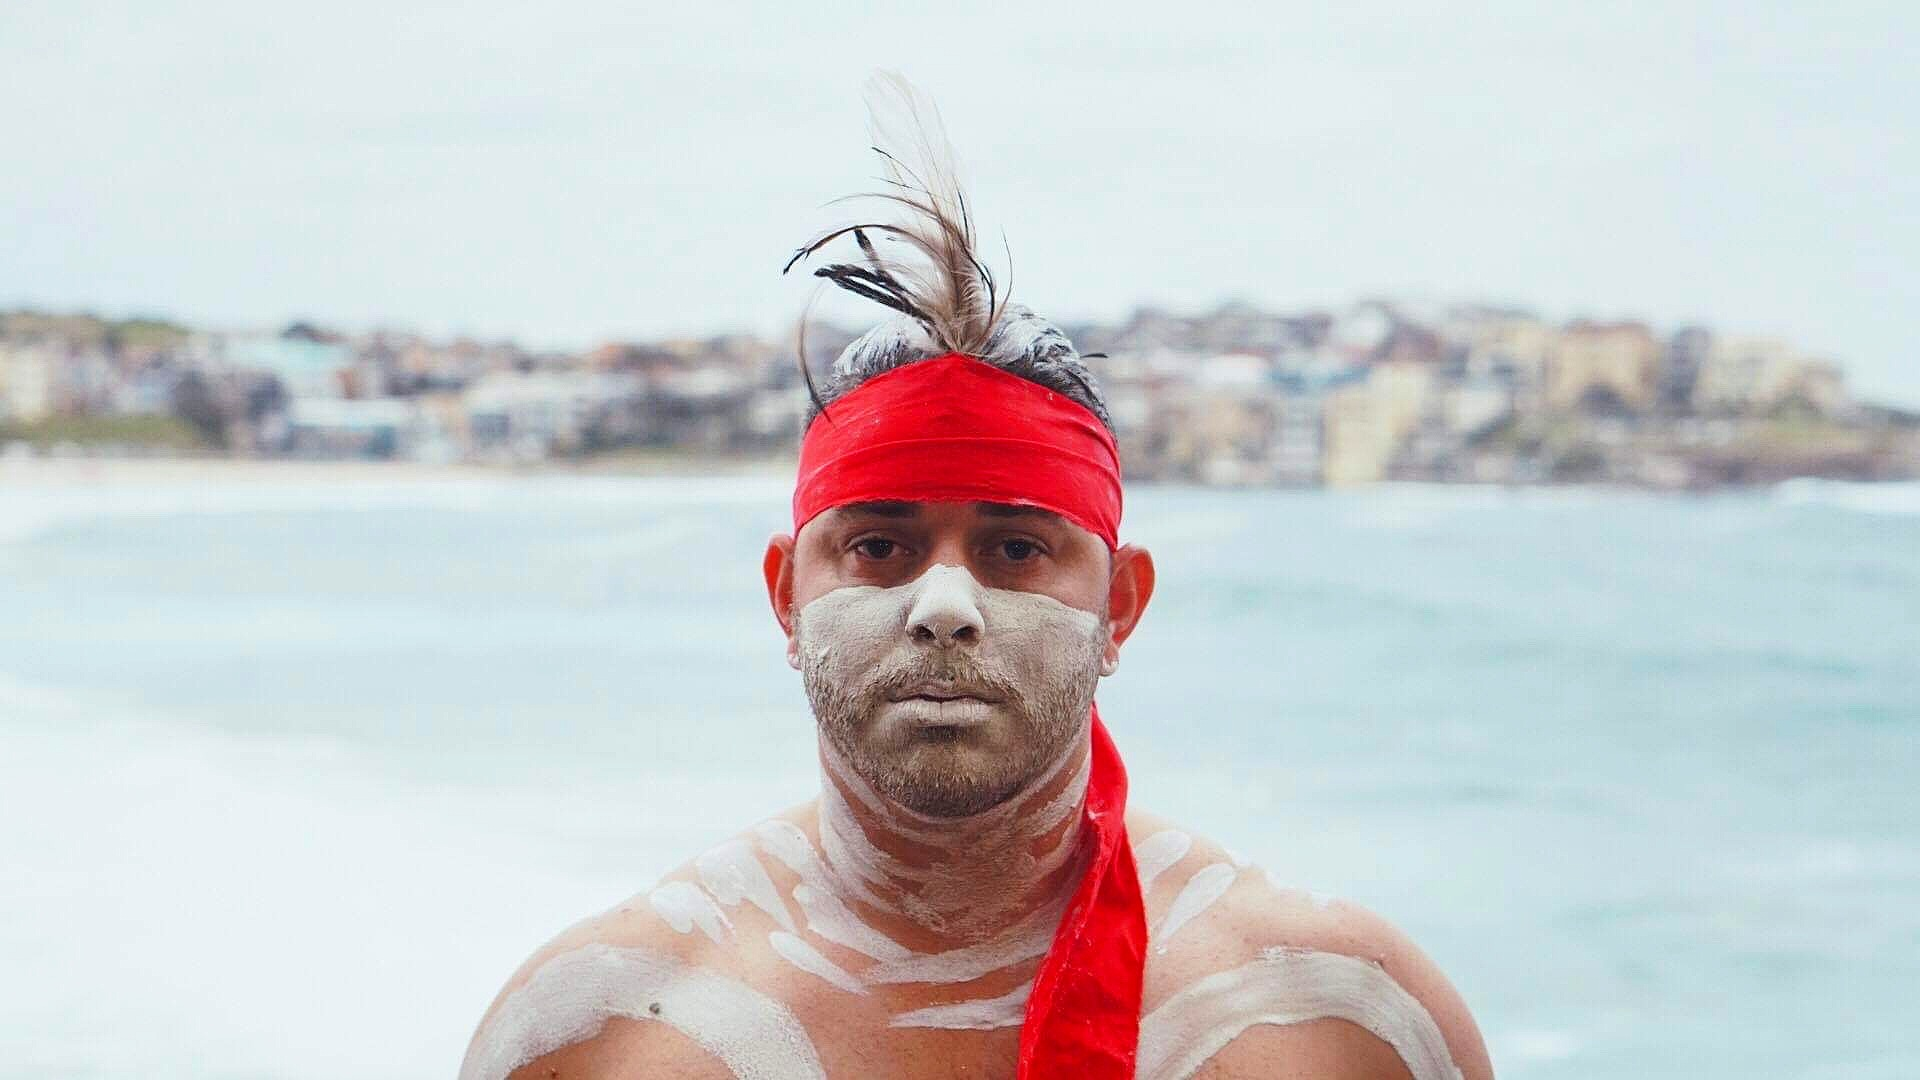 Specialisations    Traditional Aboriginal Dance    Chanter    Boomerang Throwing    Hip Hop Dancer/Teacher   Michael Compton is a Proud descendent of Yugembeh, Munanjali/Minjunbal and Gamillraay nations of the mainland, and the Mer people of the Torres Strait Islands.  Mike has danced along side his brother Darren since they were young.  He believes passing down his cultural knowledge to the younger generations is important as they are the ones who will keep it alive.